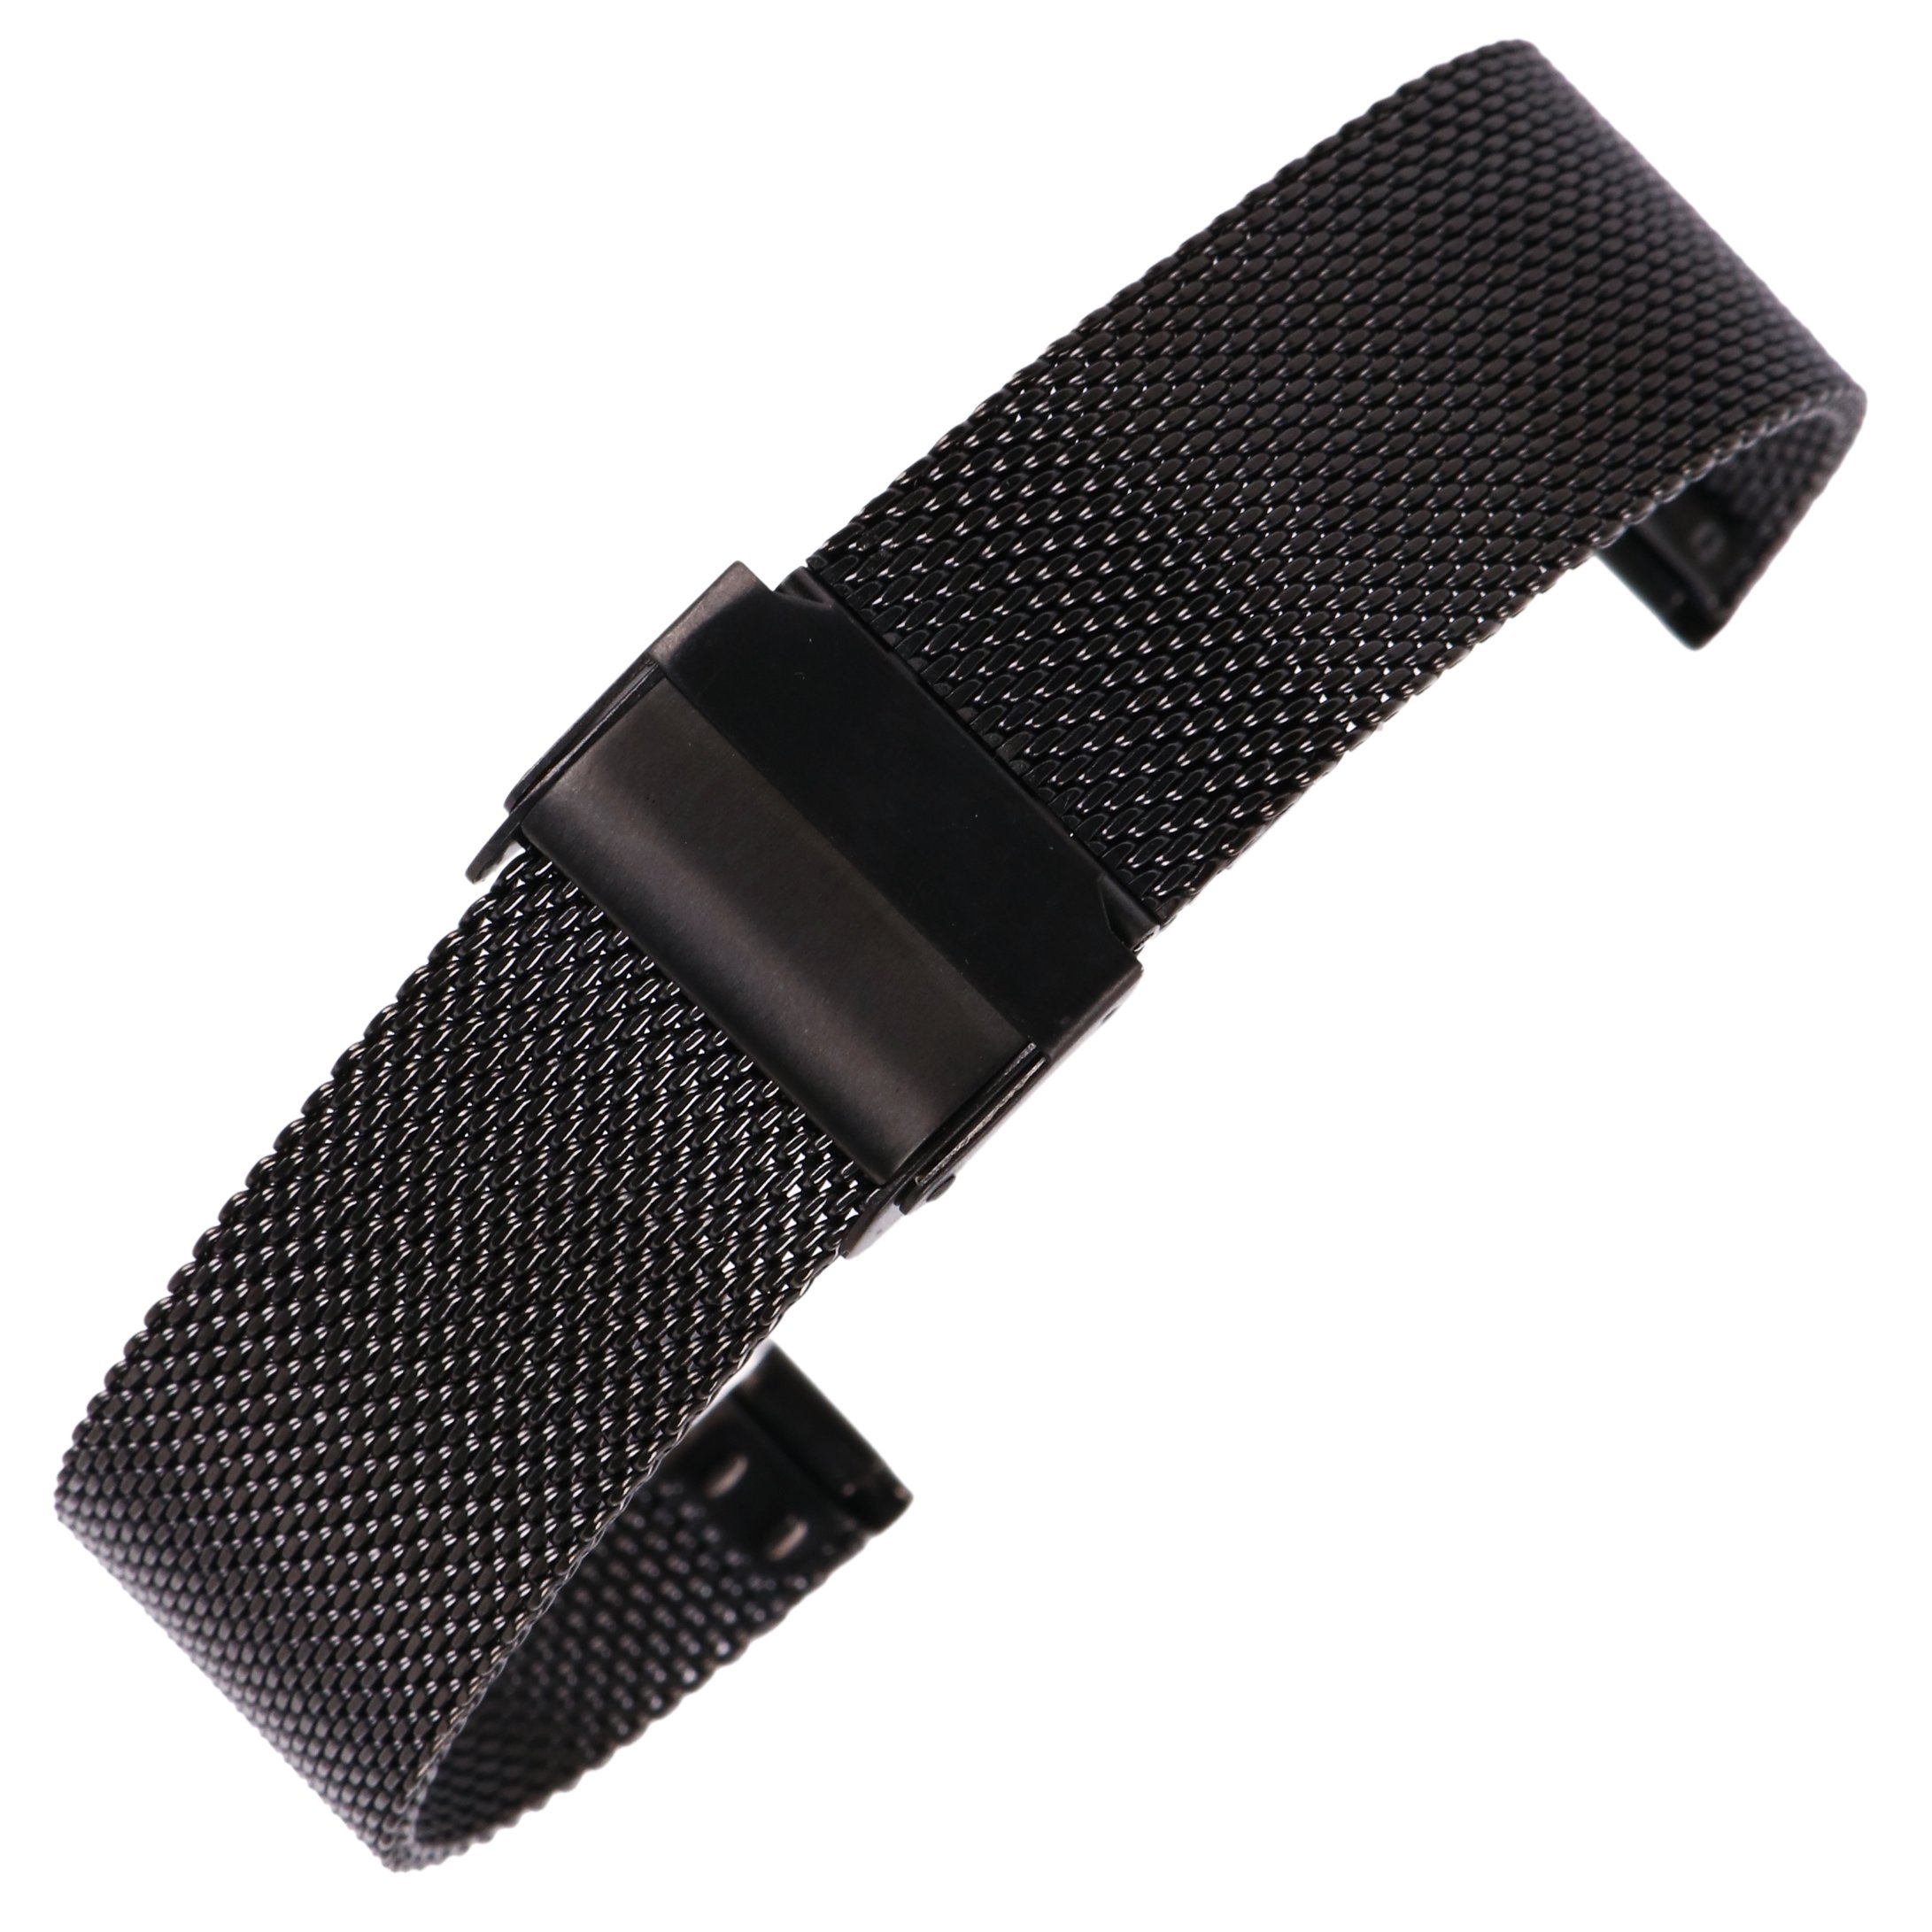 20mm Stainless Steel Mesh Watch Band Black Chainmail Mesh Strap Replacement for Business Sport Watches